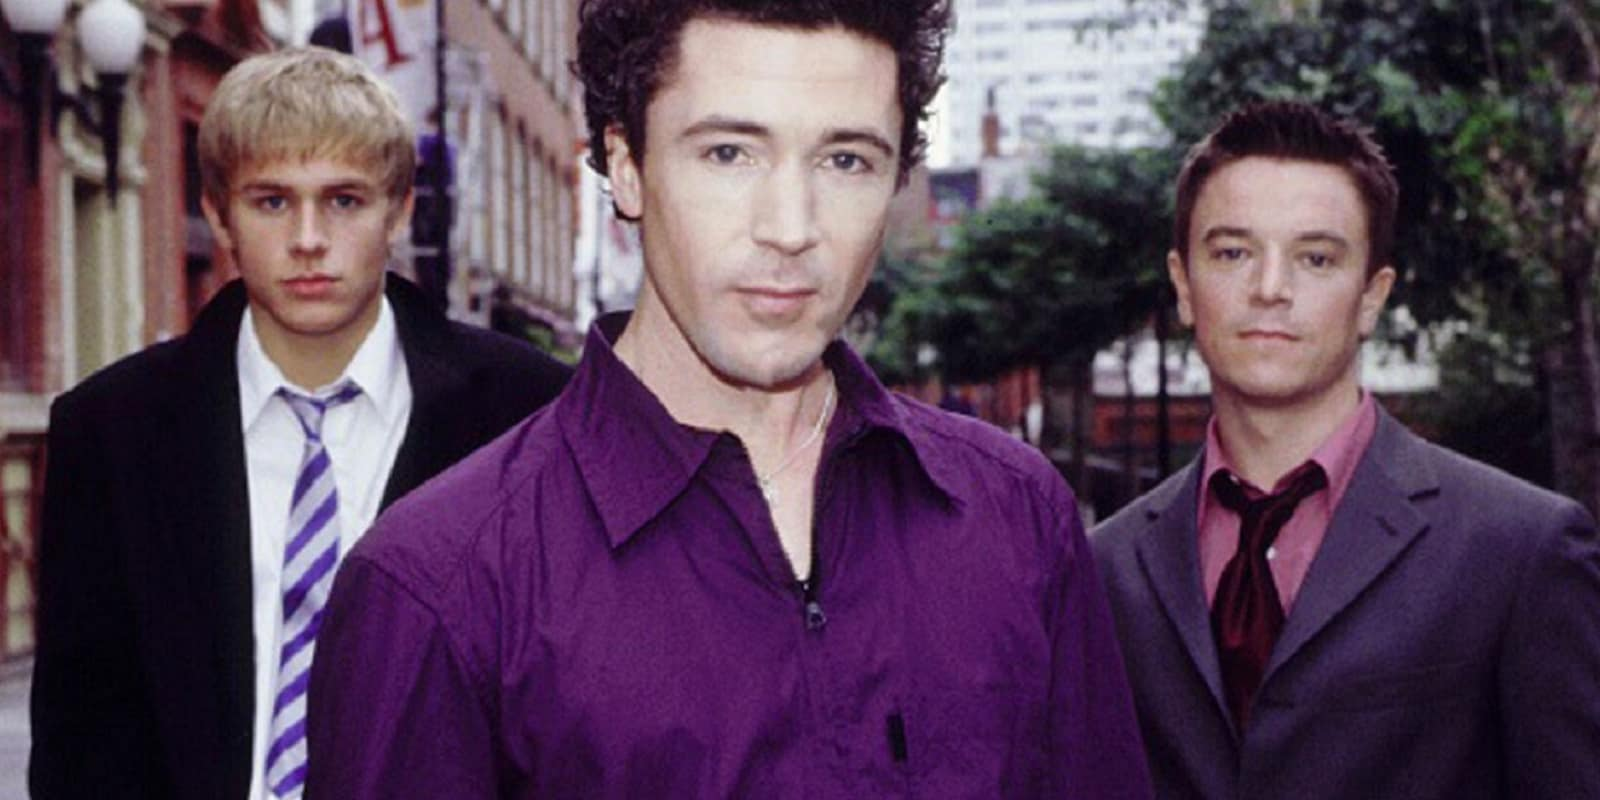 Queer as Folk followed the lives of three gay characters.